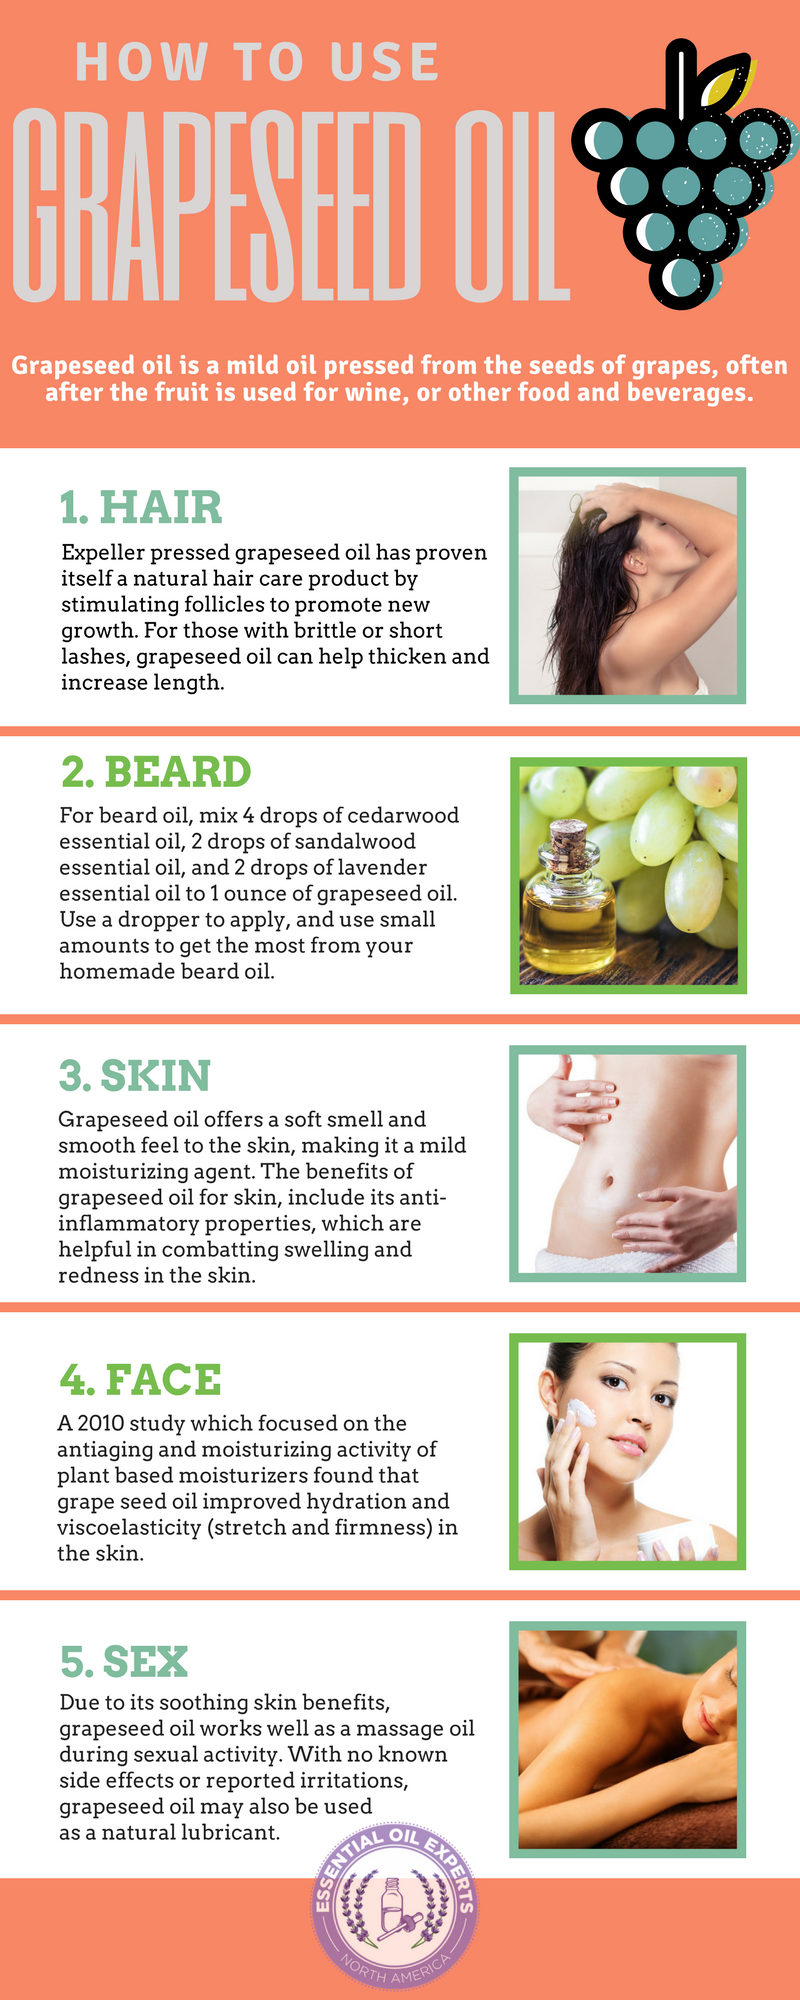 Grapeseed Oil Benefits And Uses For Hair Skin Face Where To Buy Grapeseed Oil Benefits Coconut Oil For Skin Oil Skin Care